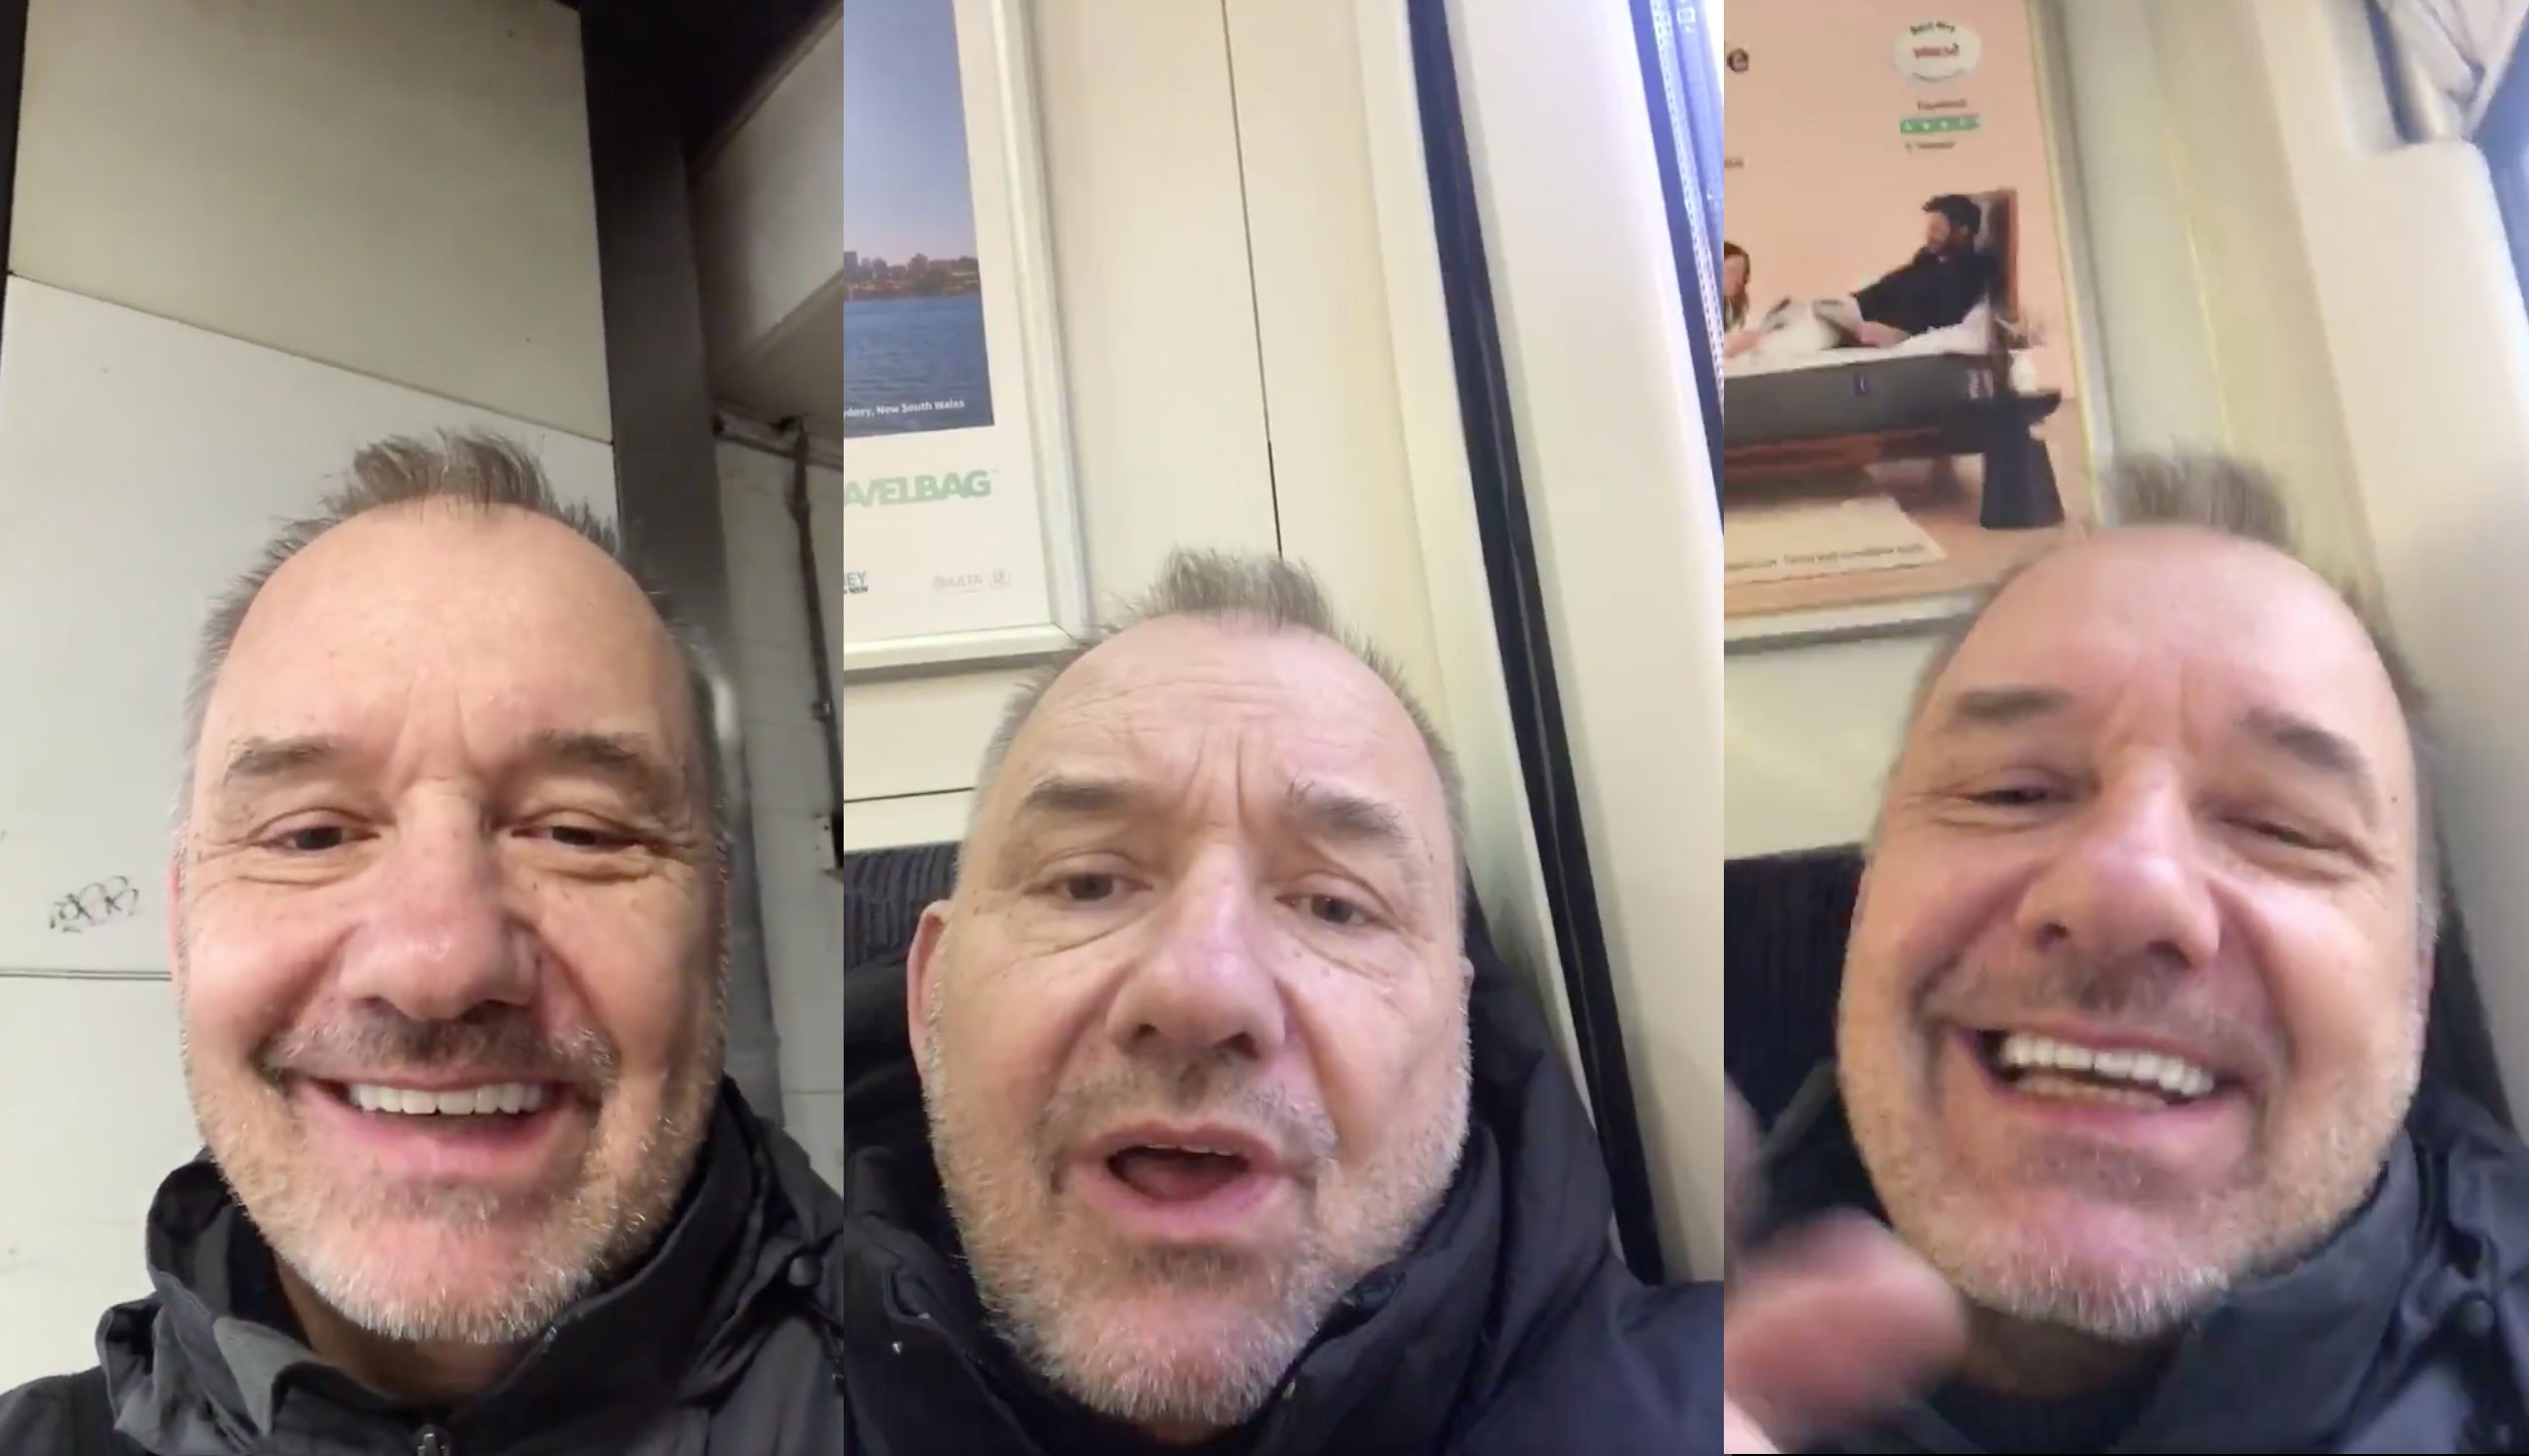 Bob Mortimer's Train Guy exposes the absurdity of workplace culture